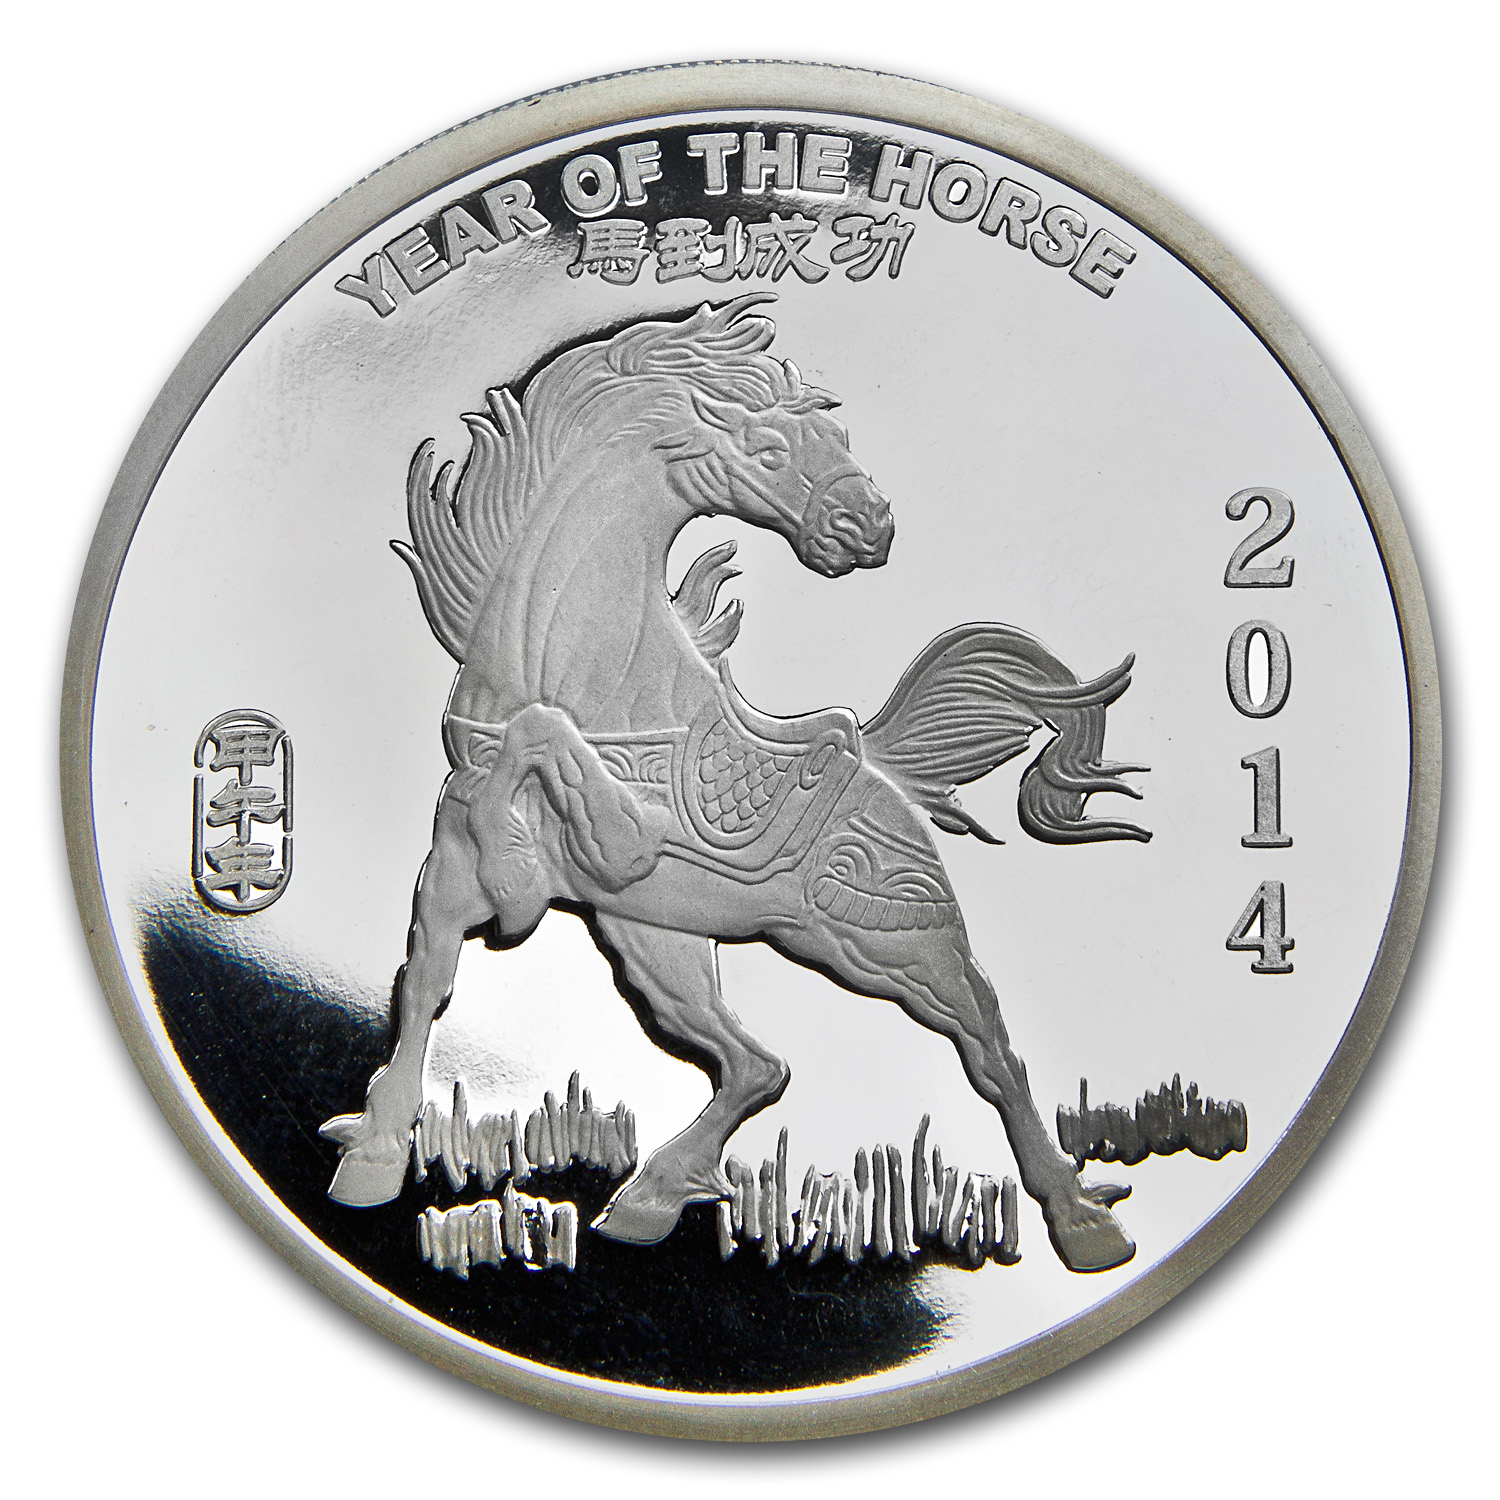 2 oz Silver Round - APMEX (2014 Year of the Horse)